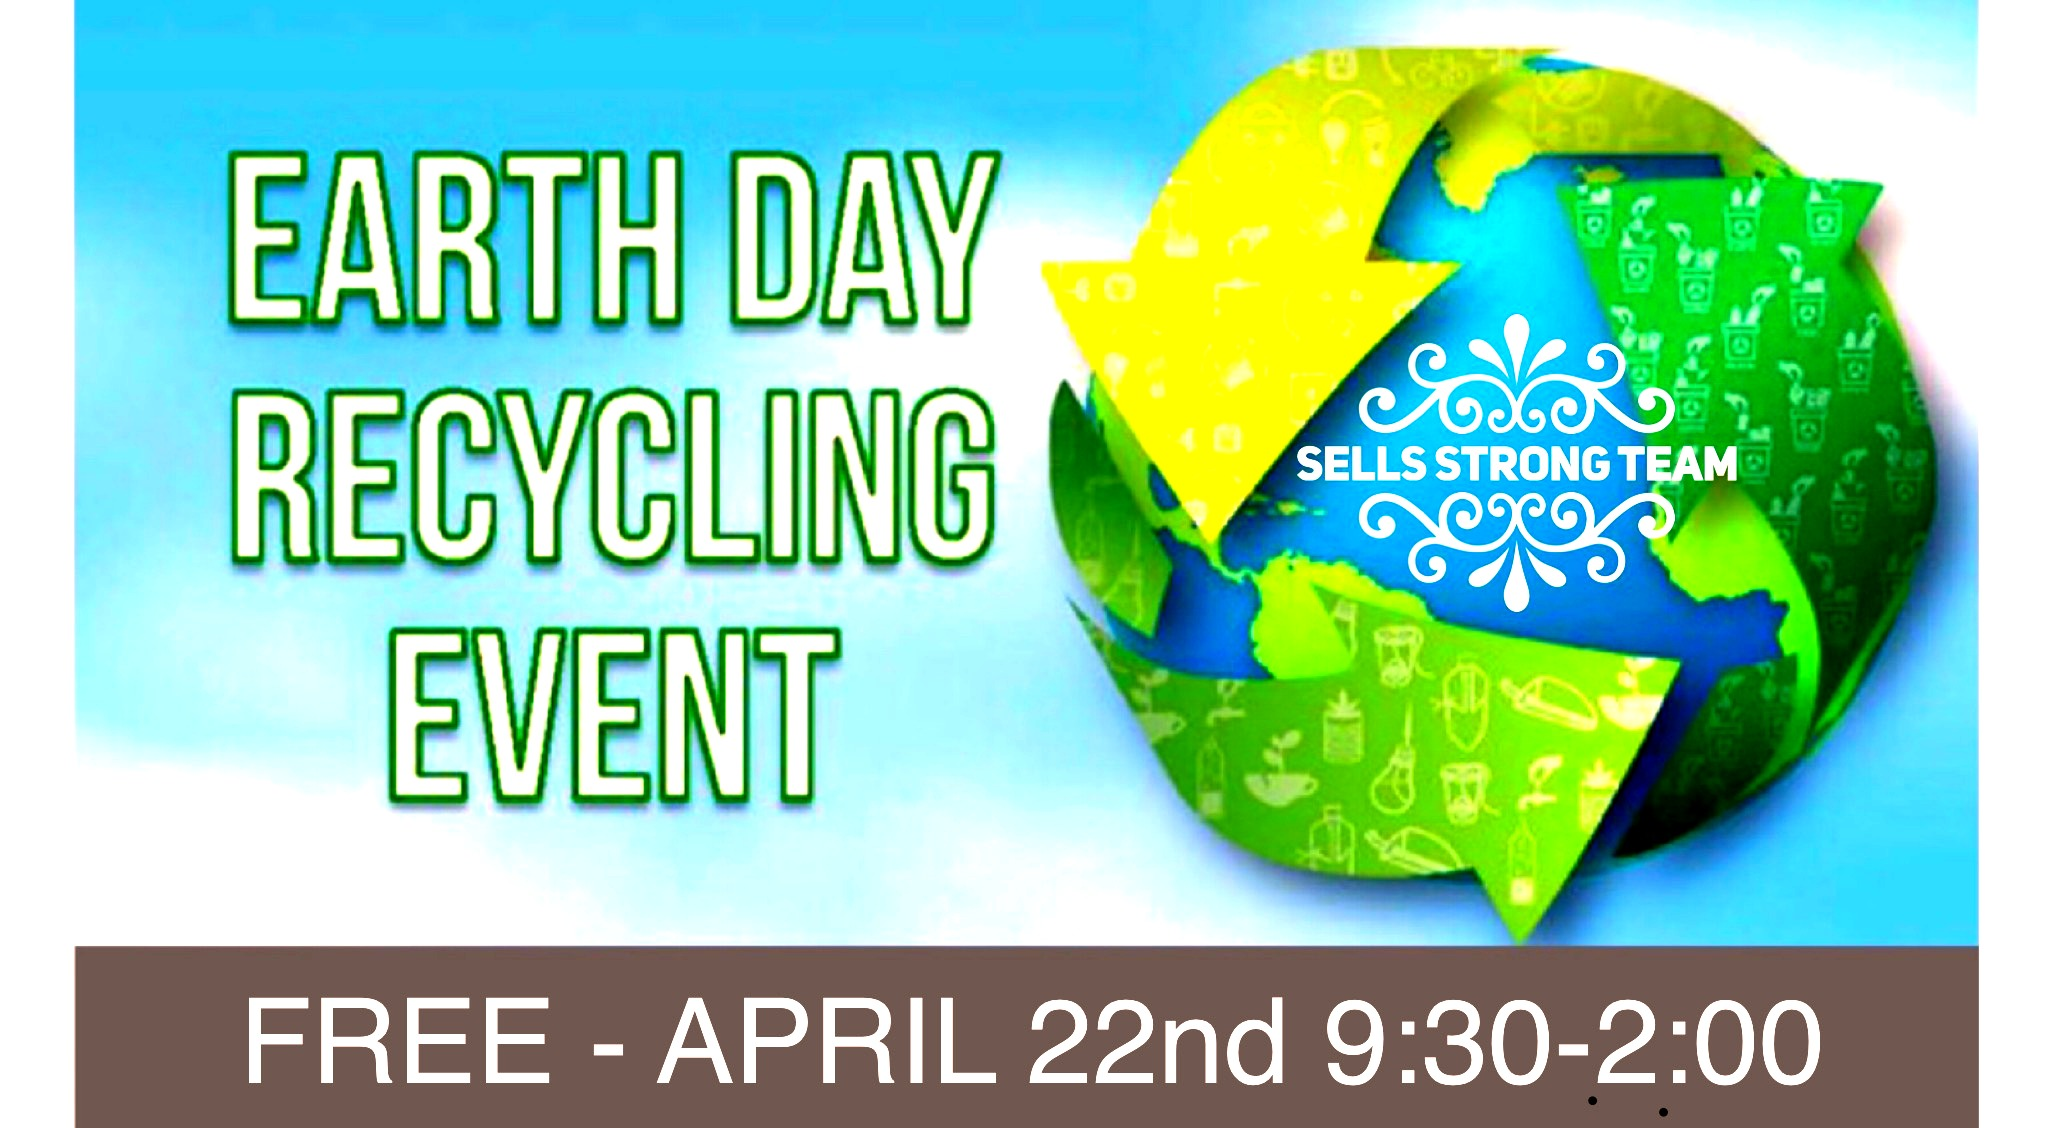 FREE EARTH DAY RECYCLING EVENT - APRIL 22nd 9:30 - 2:00